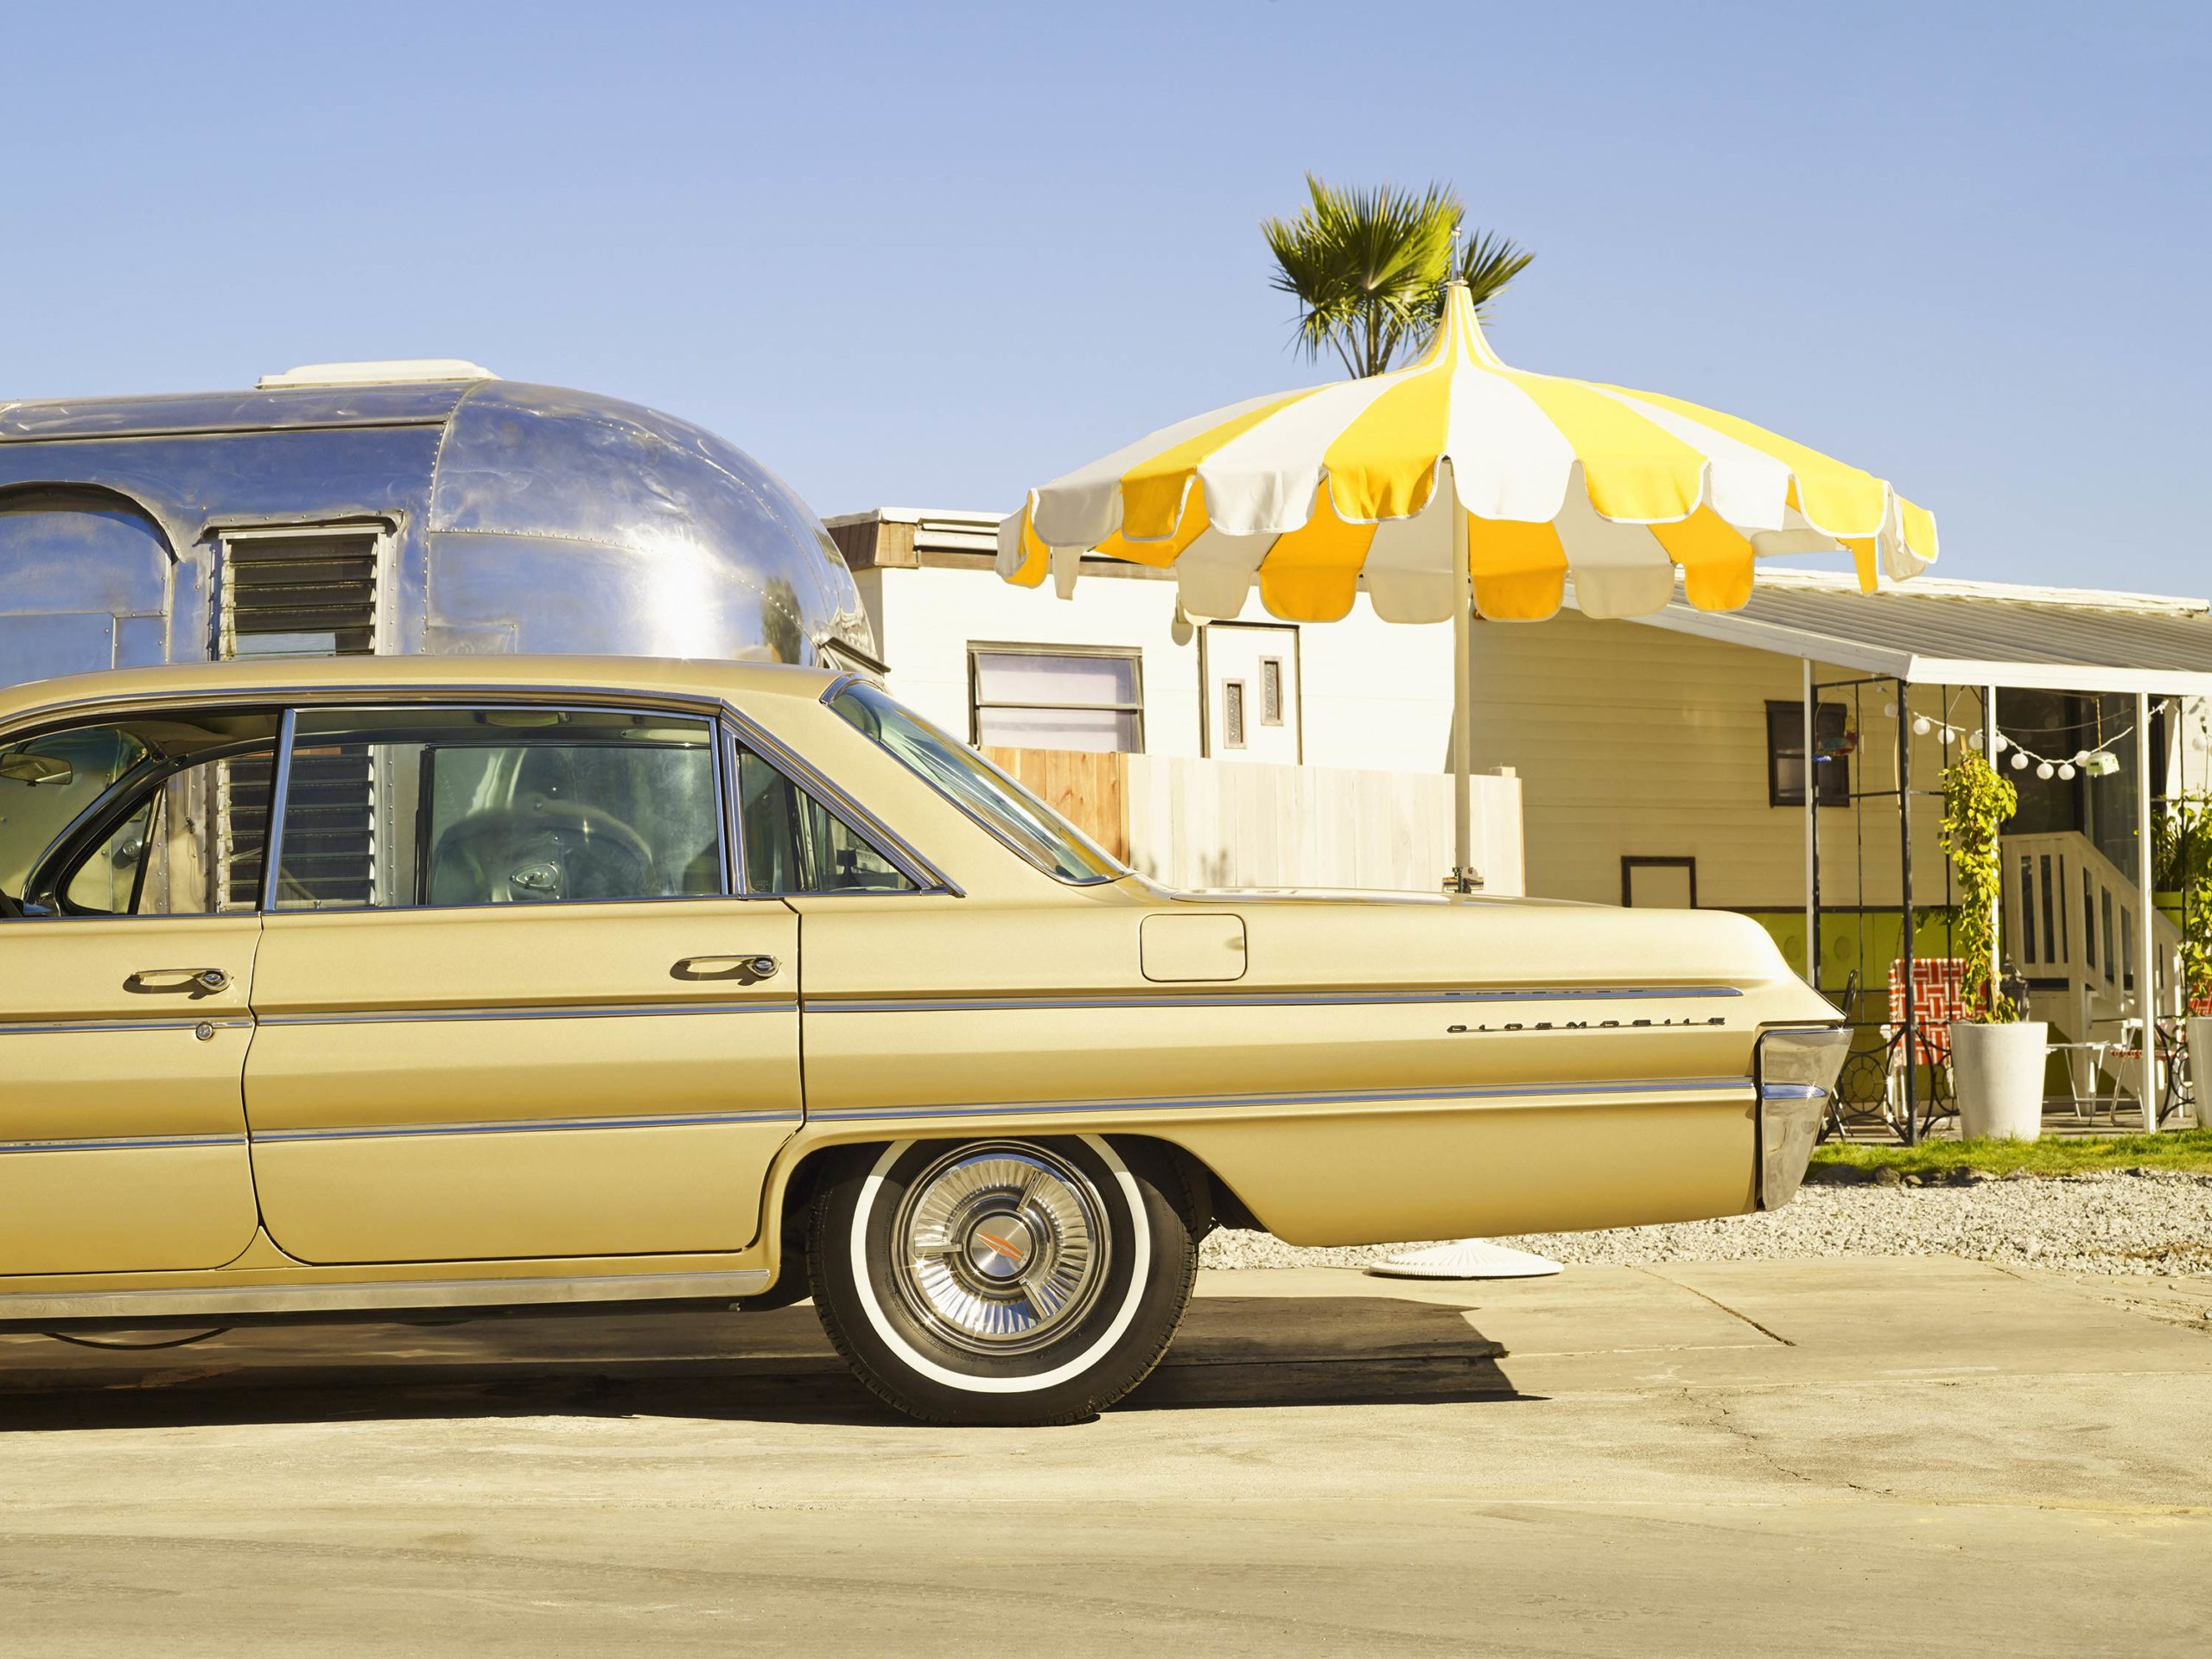 Oldsmobile In The Trailerpark - I Heart Palm Springs Collection - Fine Art Photography by Toby Dixon